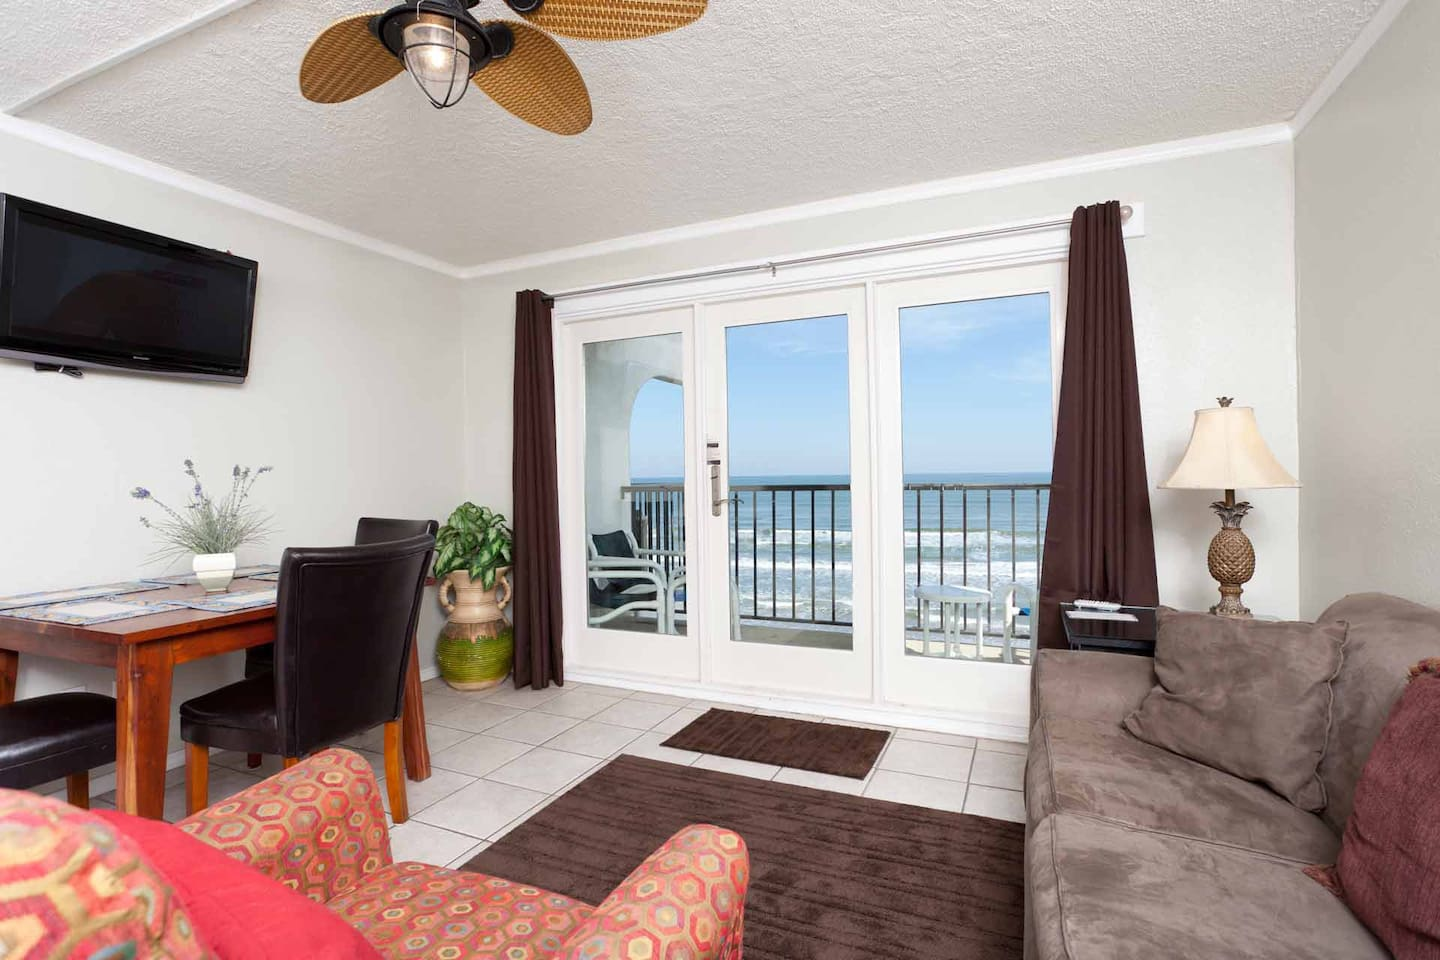 This condo puts you right on the beachfront.